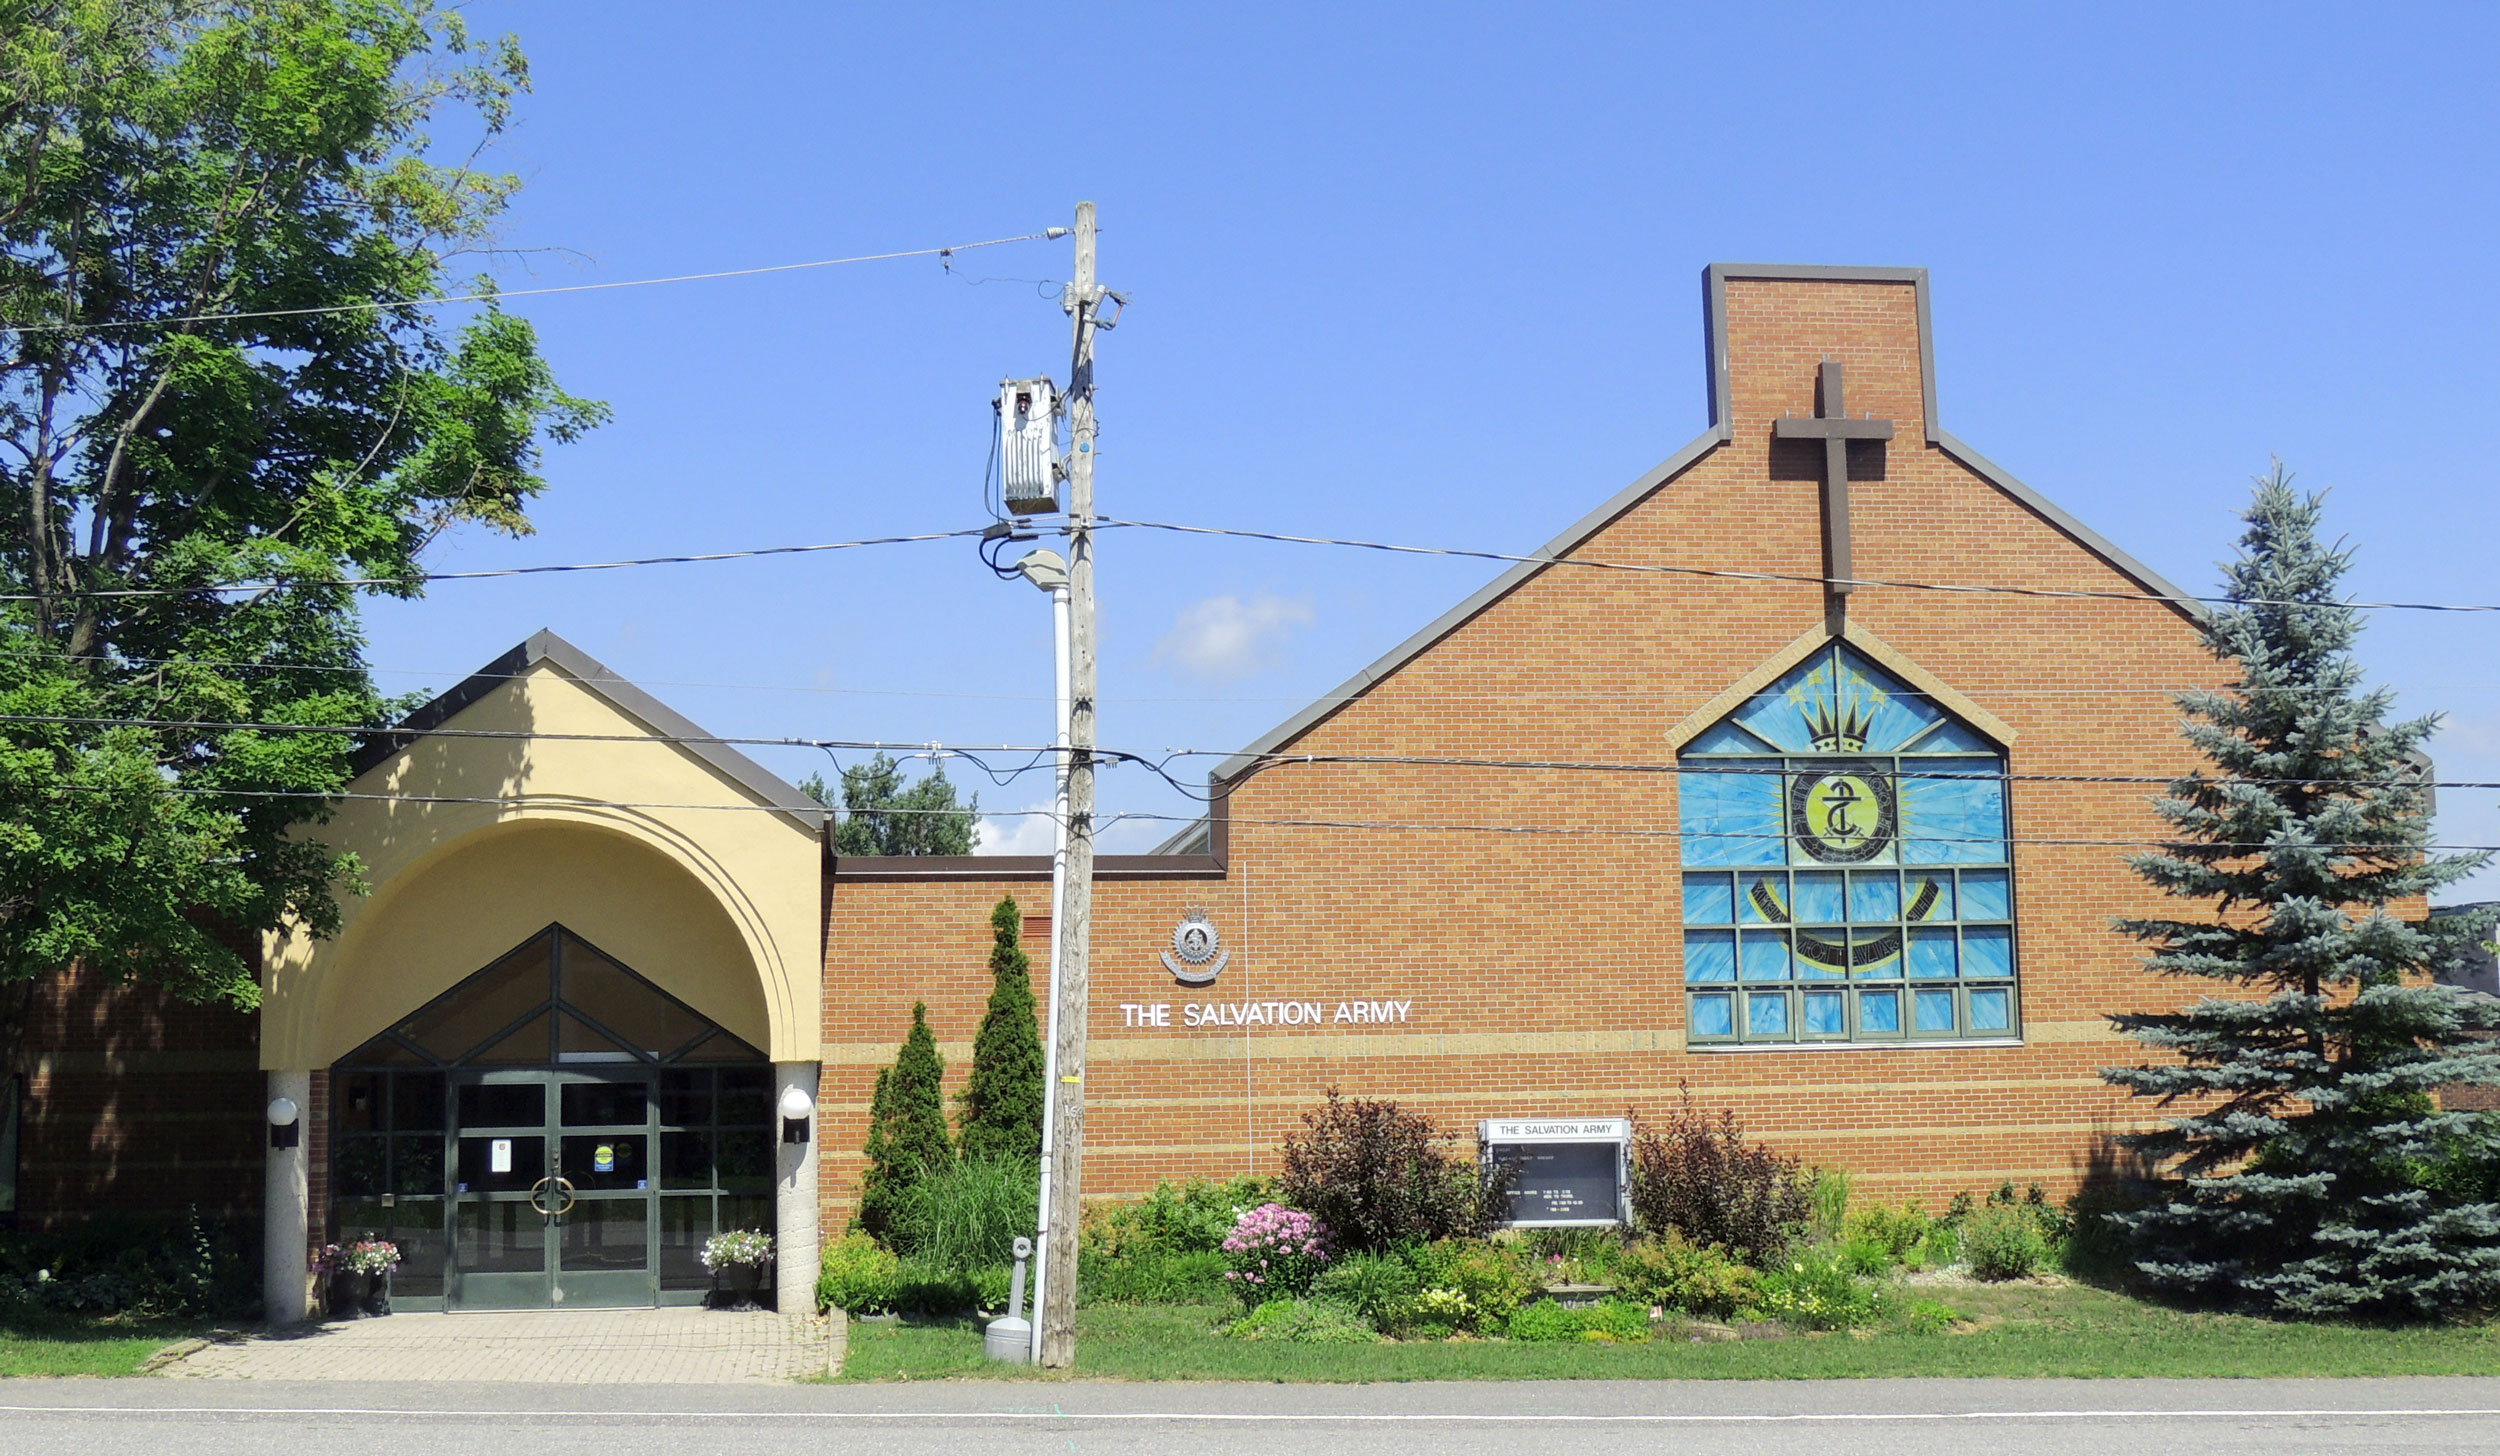 The exterior of the Salvation Army Church in Huntsville